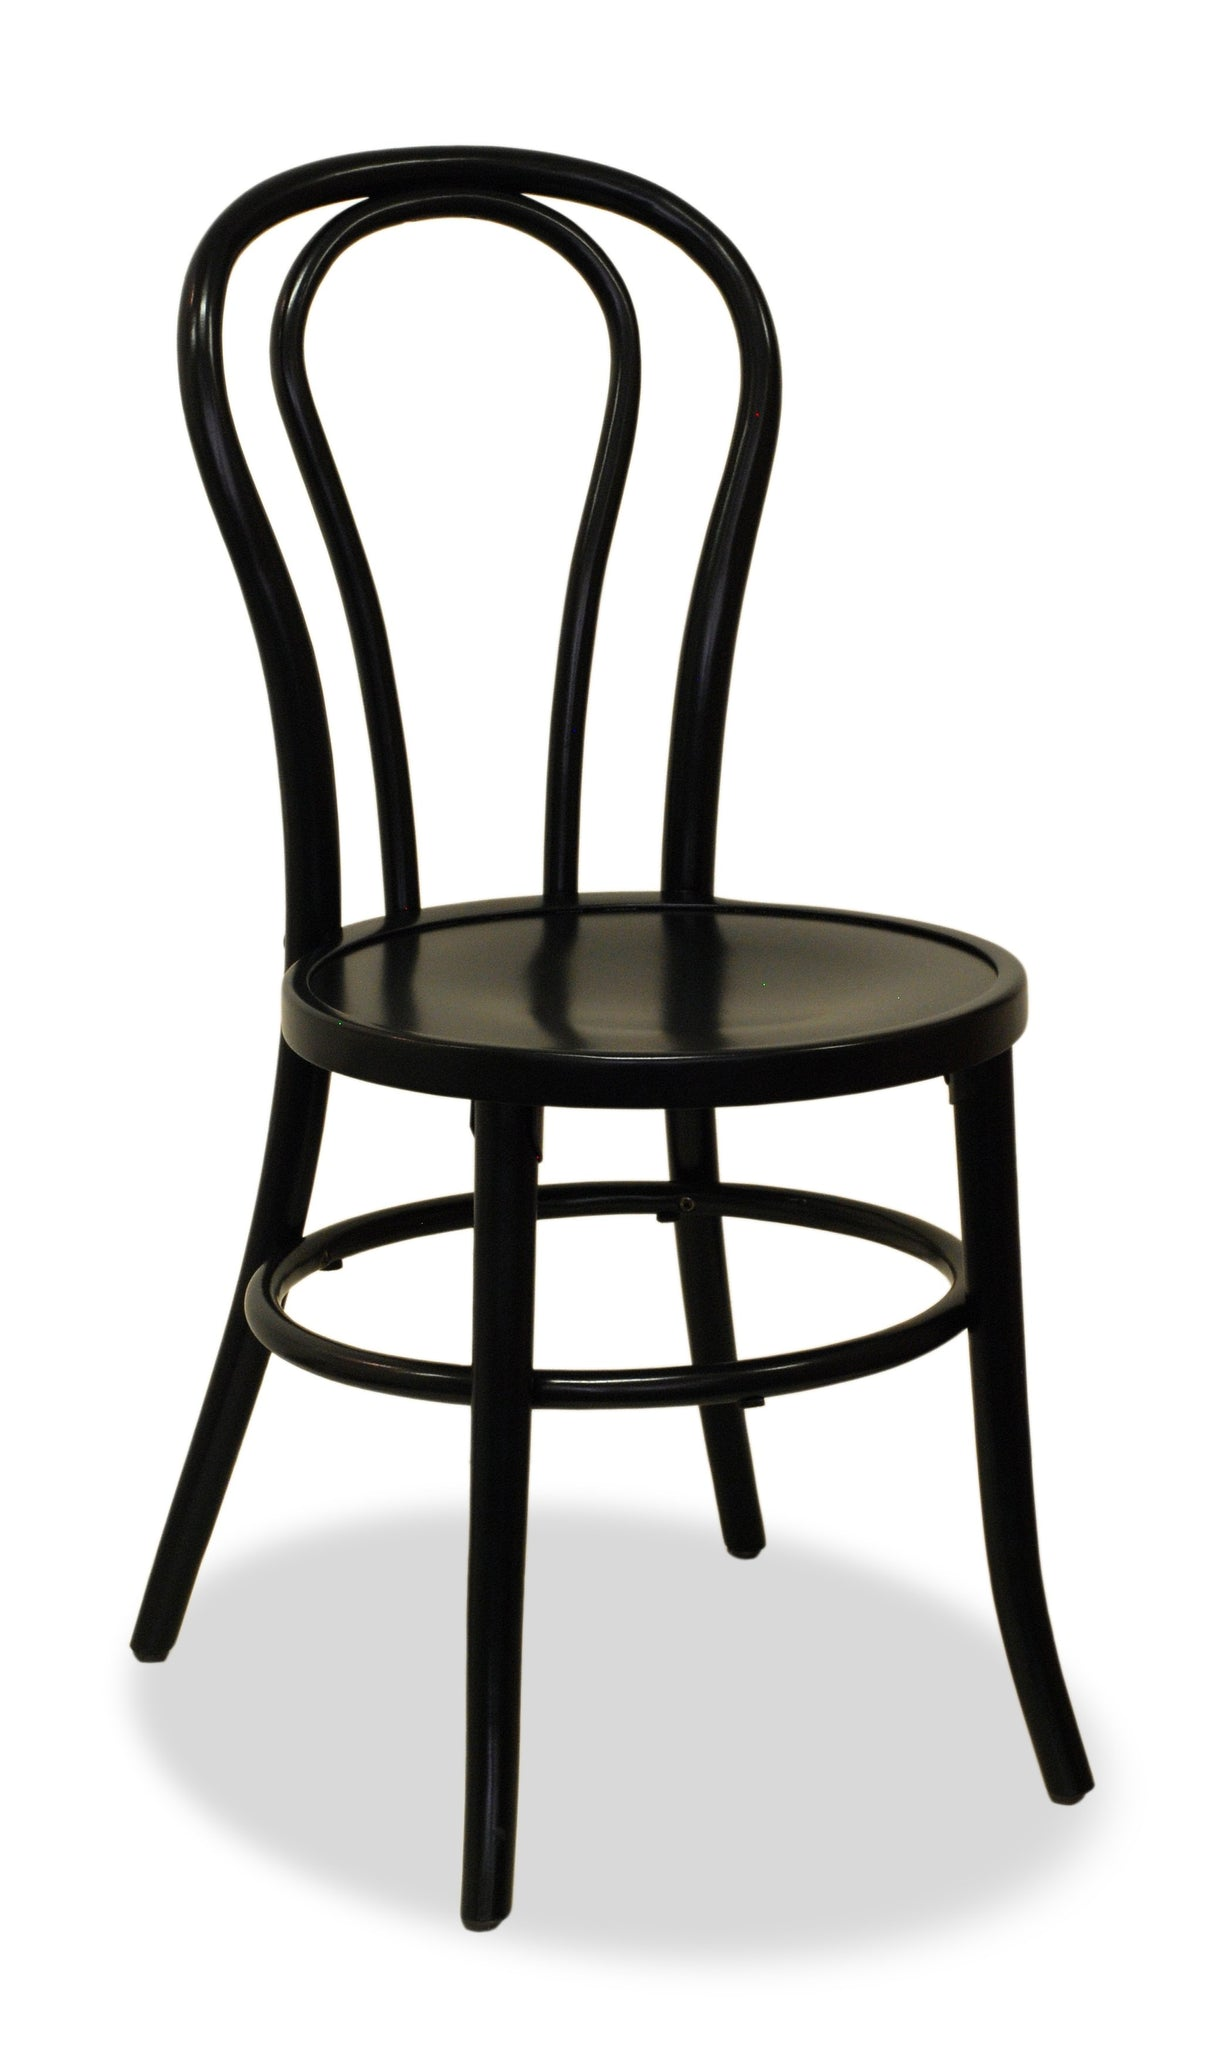 black bentwood chair - bon uno s